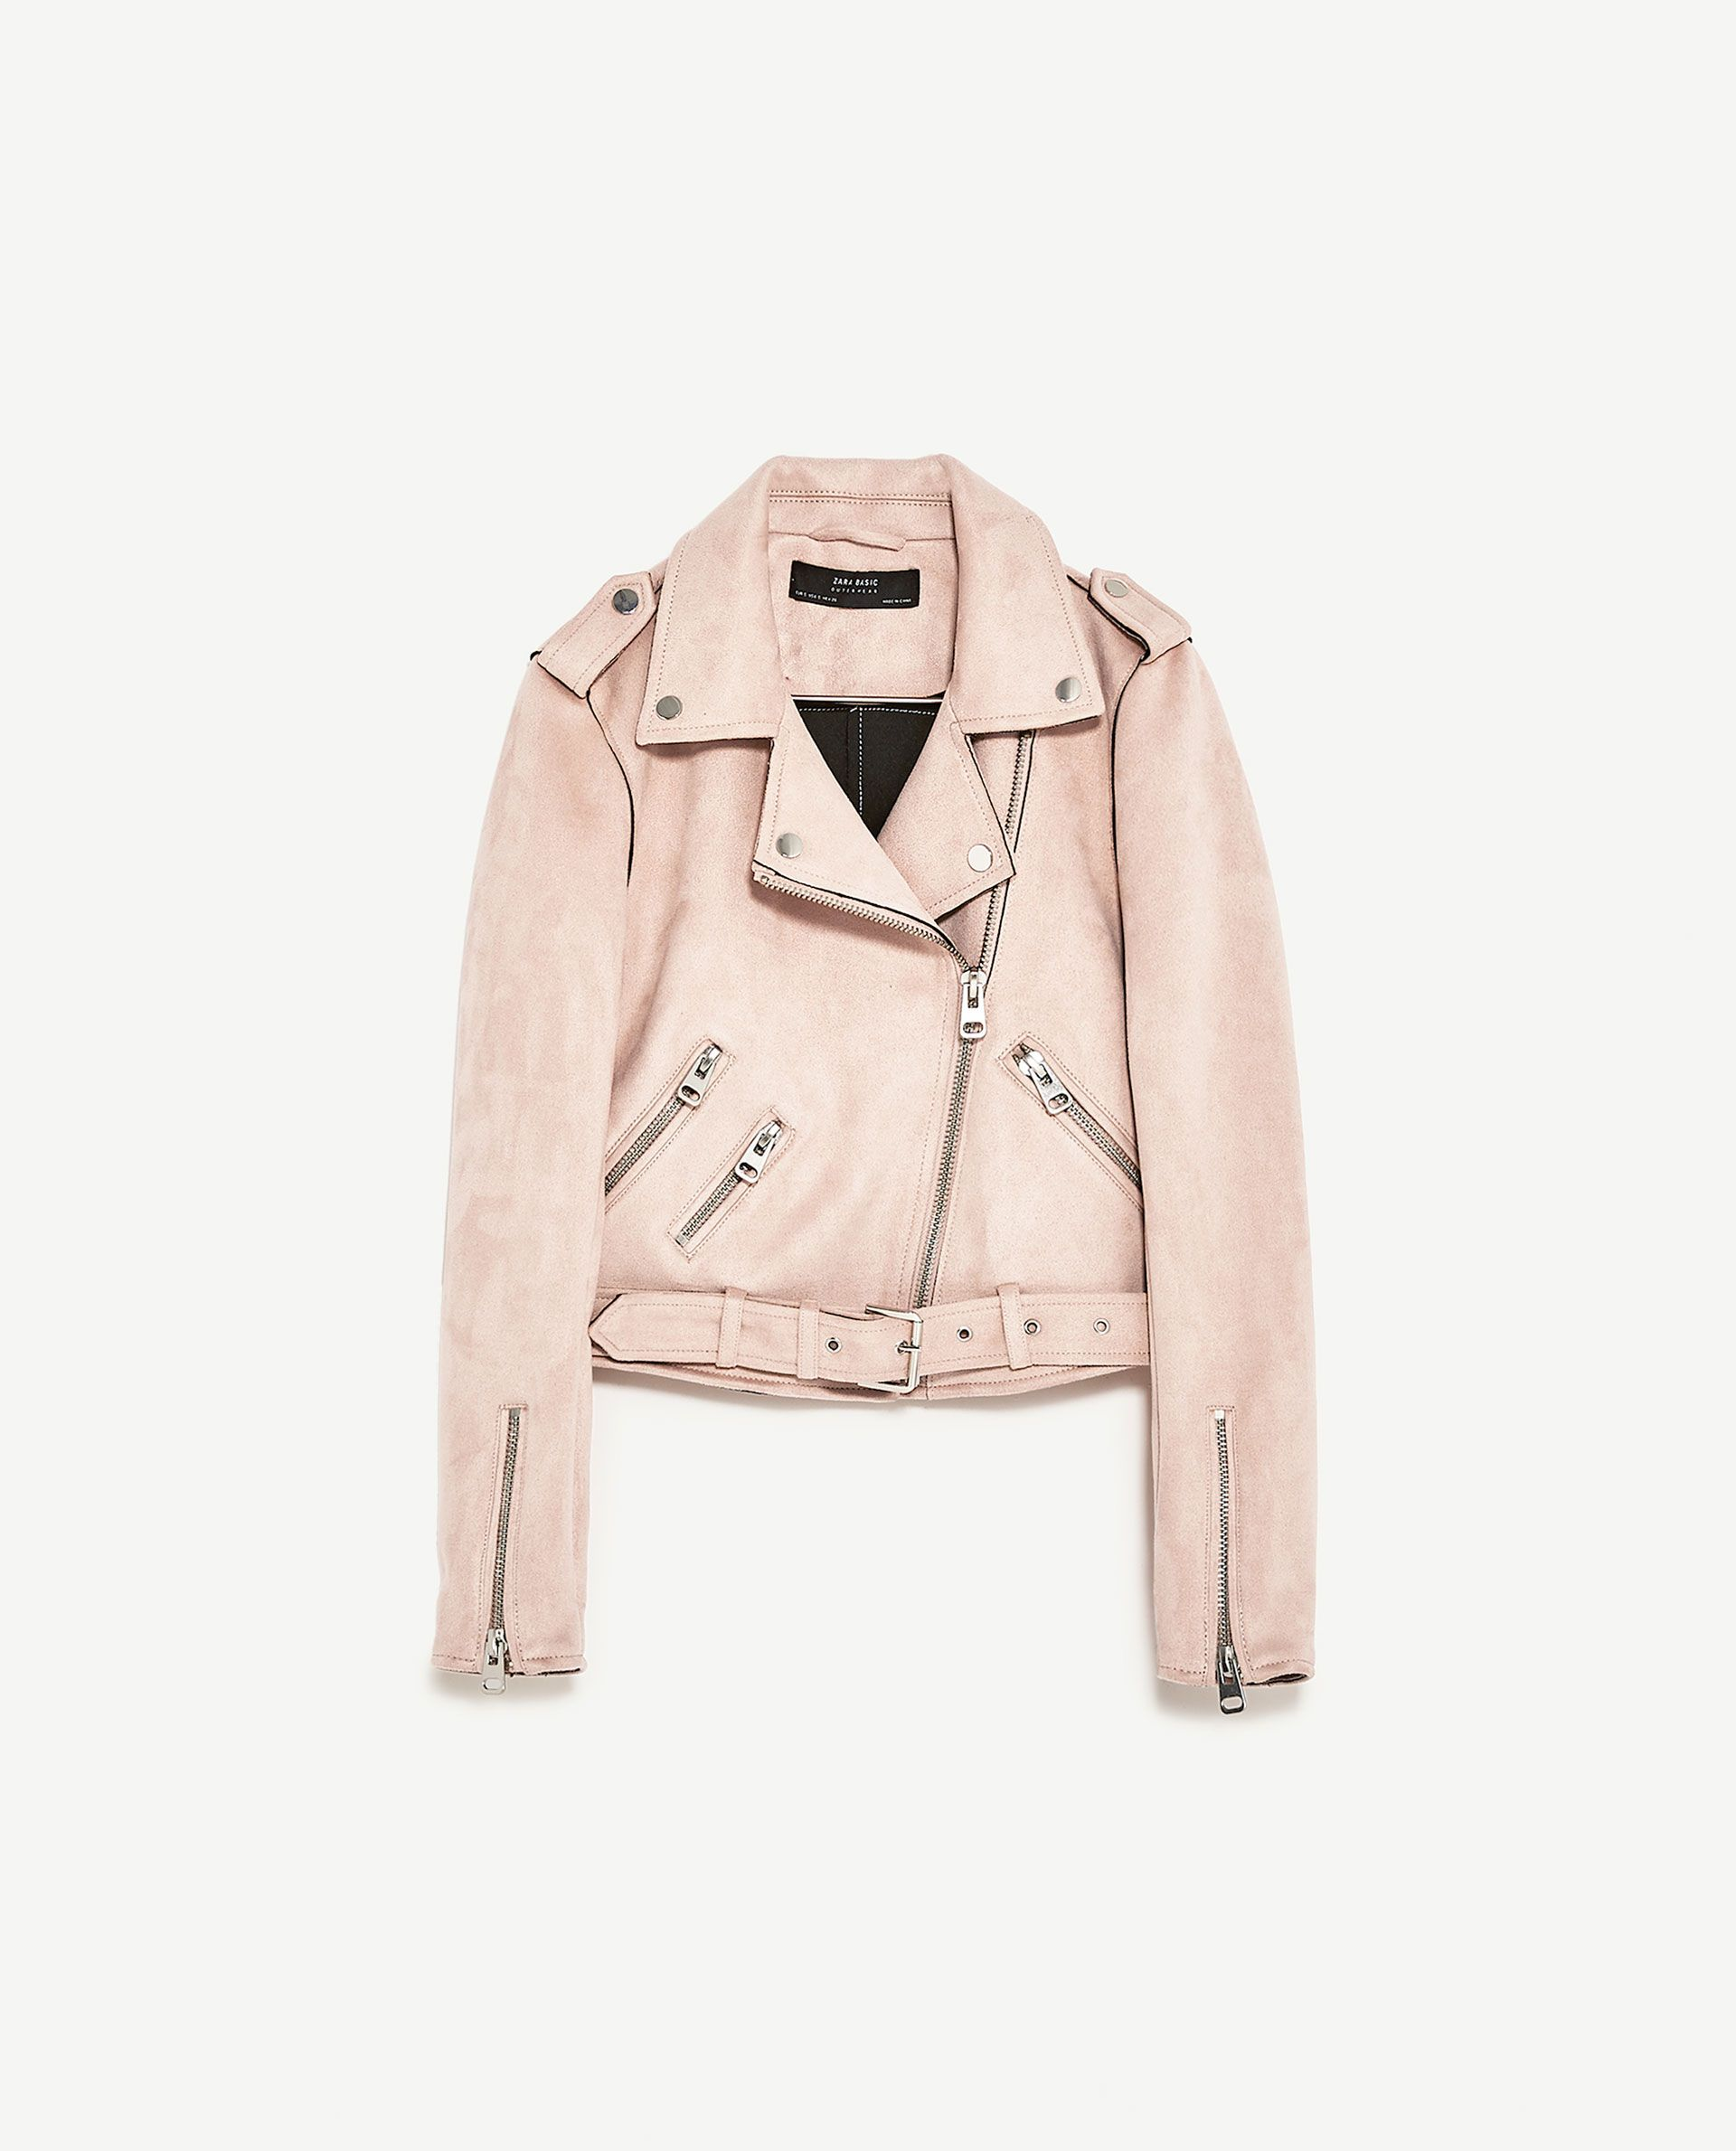 JACKET WITH ZIPS DETAILS  6,990 RSD  COLOR: Pink  6318/021